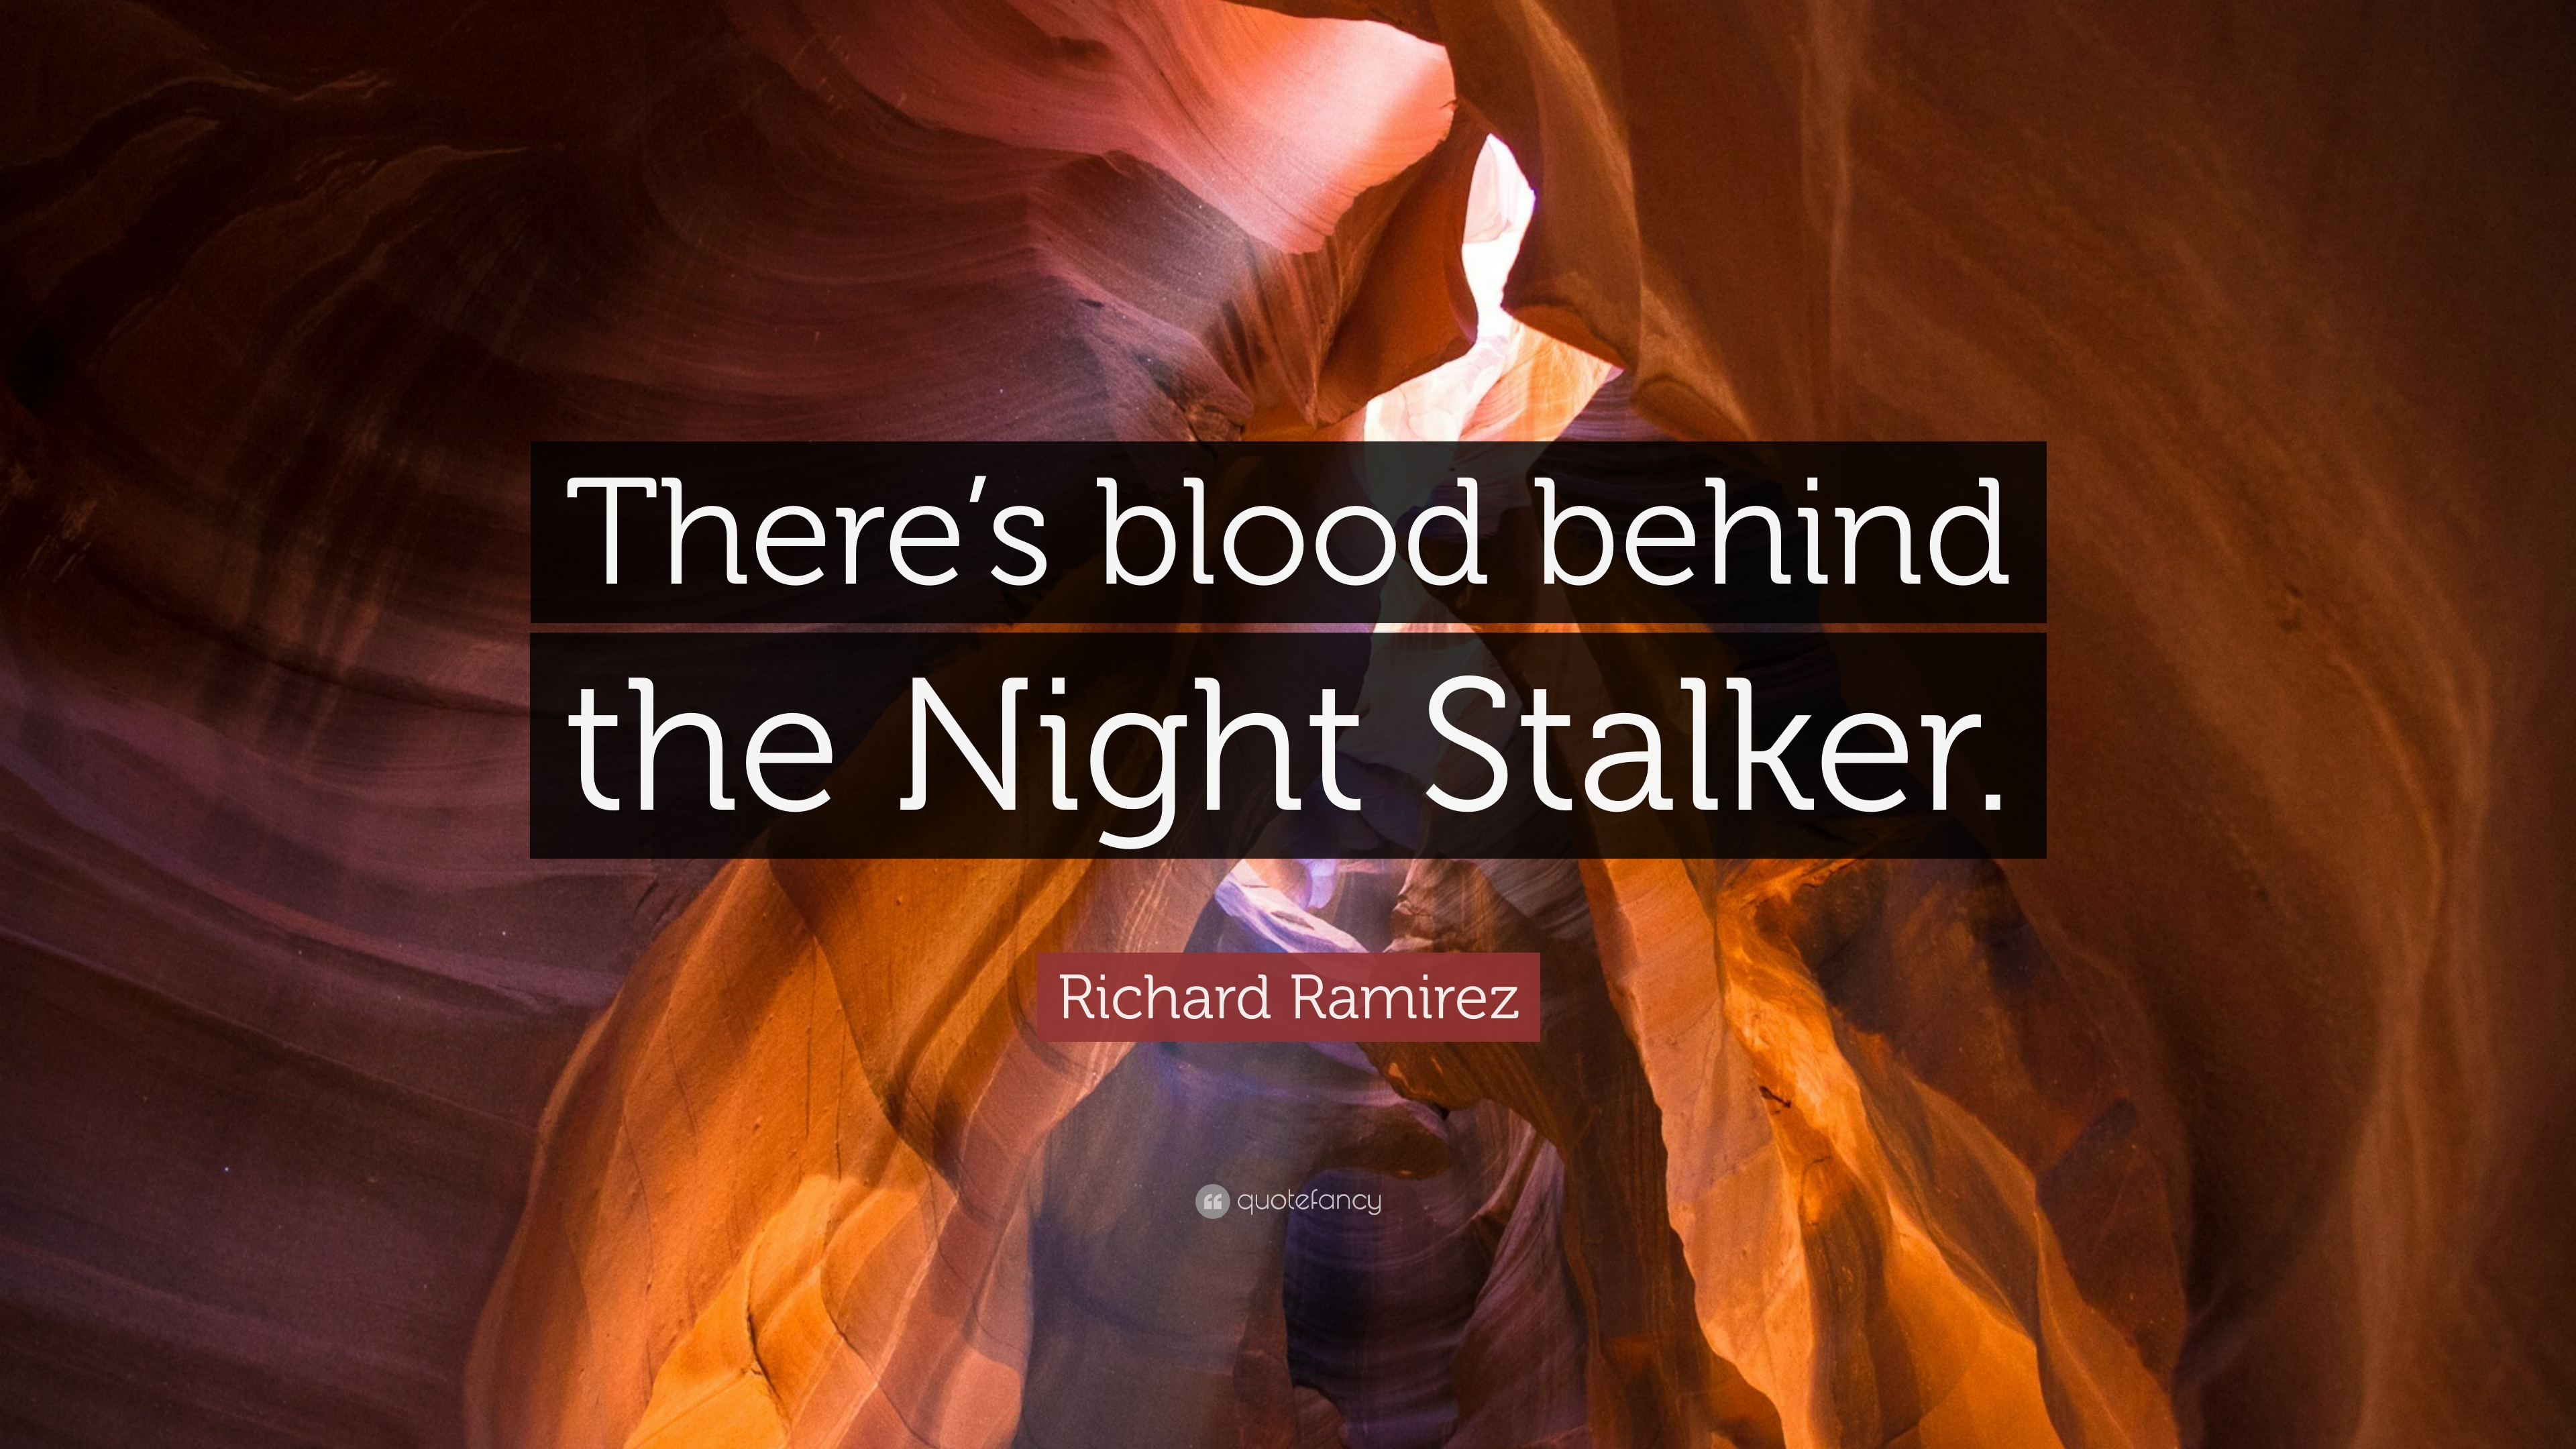 the night stalker essay Dubbed the 'night stalker,' richard ramirez was an american serial killer who killed at least 14 people and tortured dozens more before being captured in 1985.